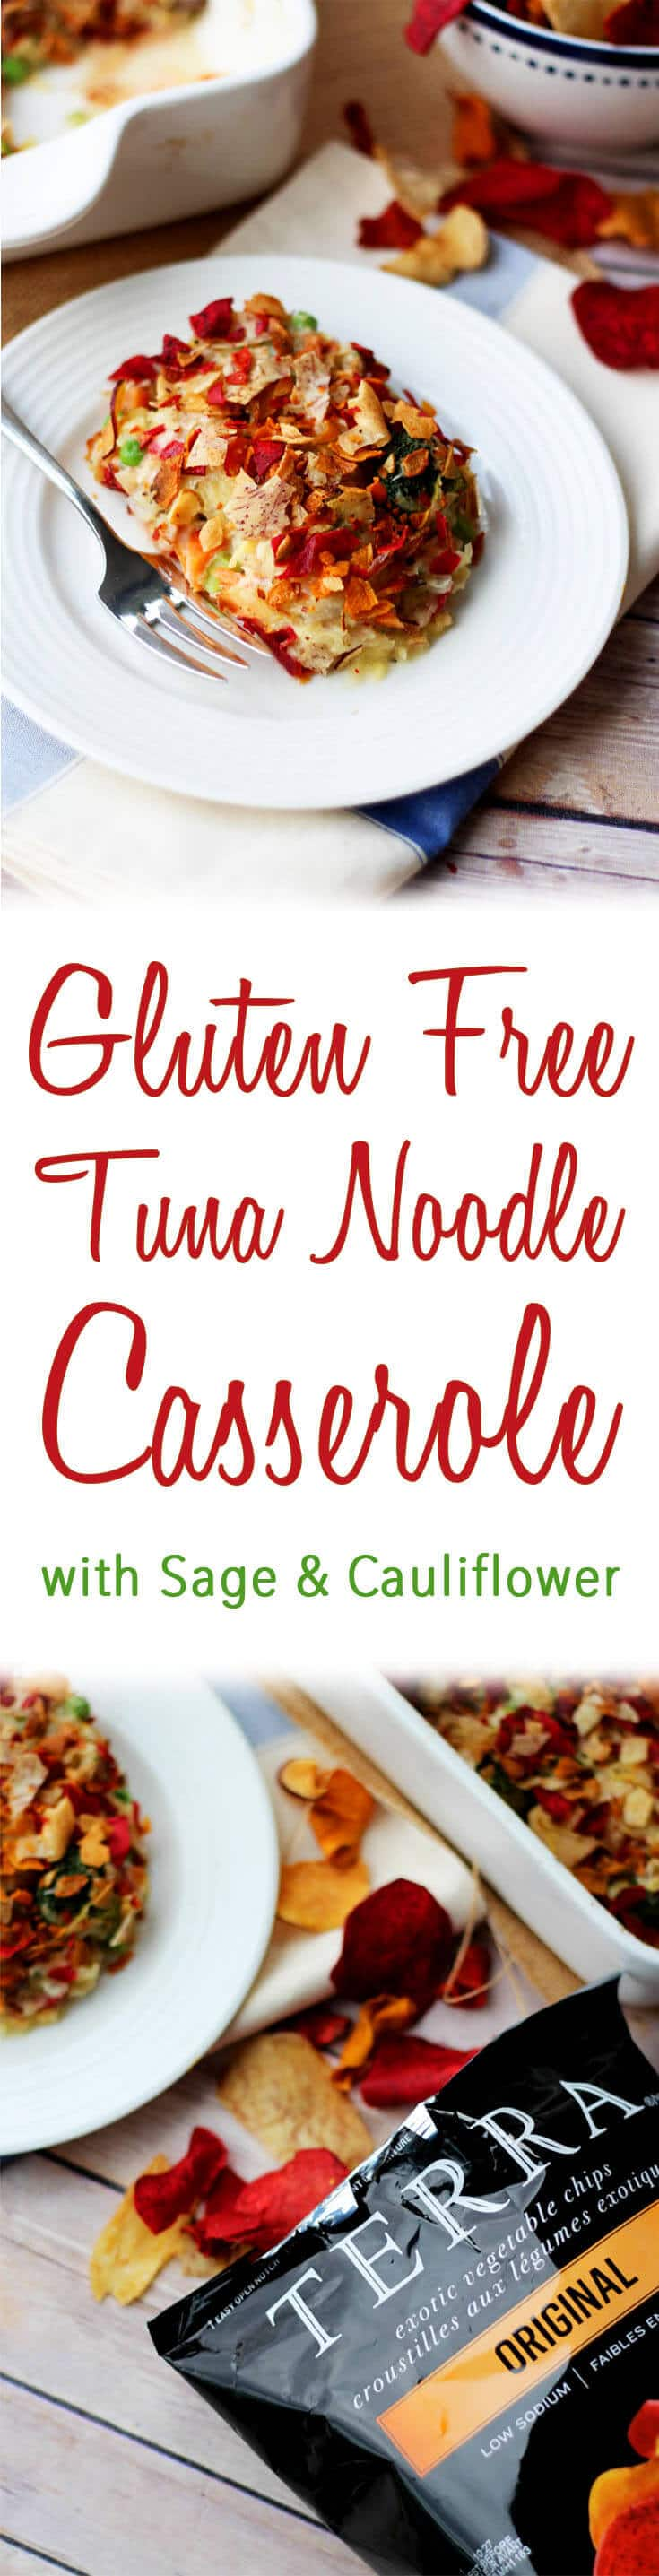 This healthy gluten free tuna noodle casserole is a lightened up, low carb version of the classic comfort food dish.